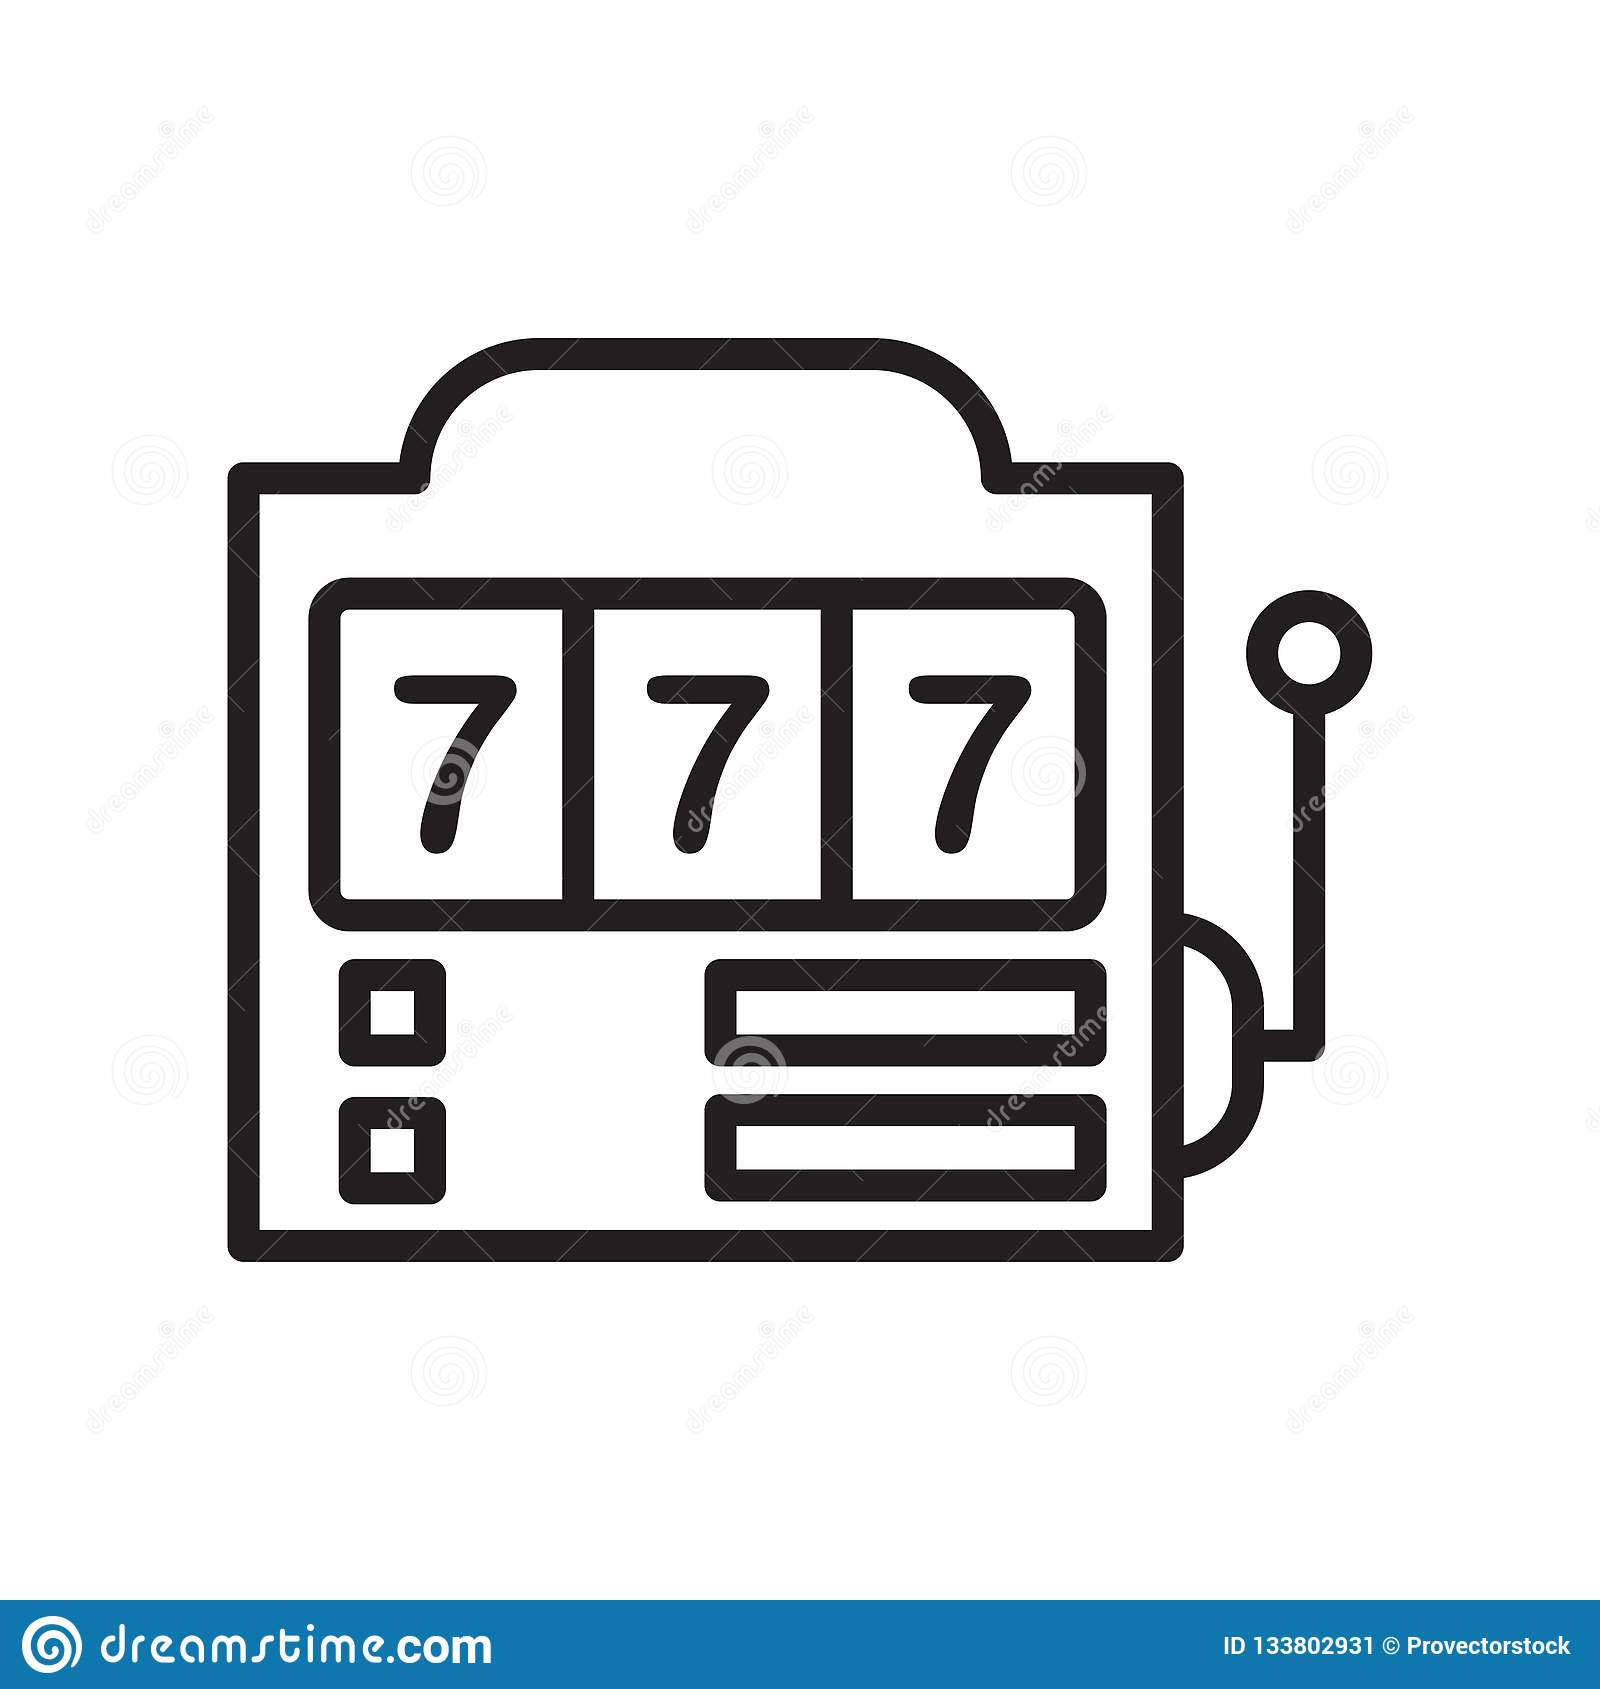 Slot machine icon vector sign and symbol isolated on white background